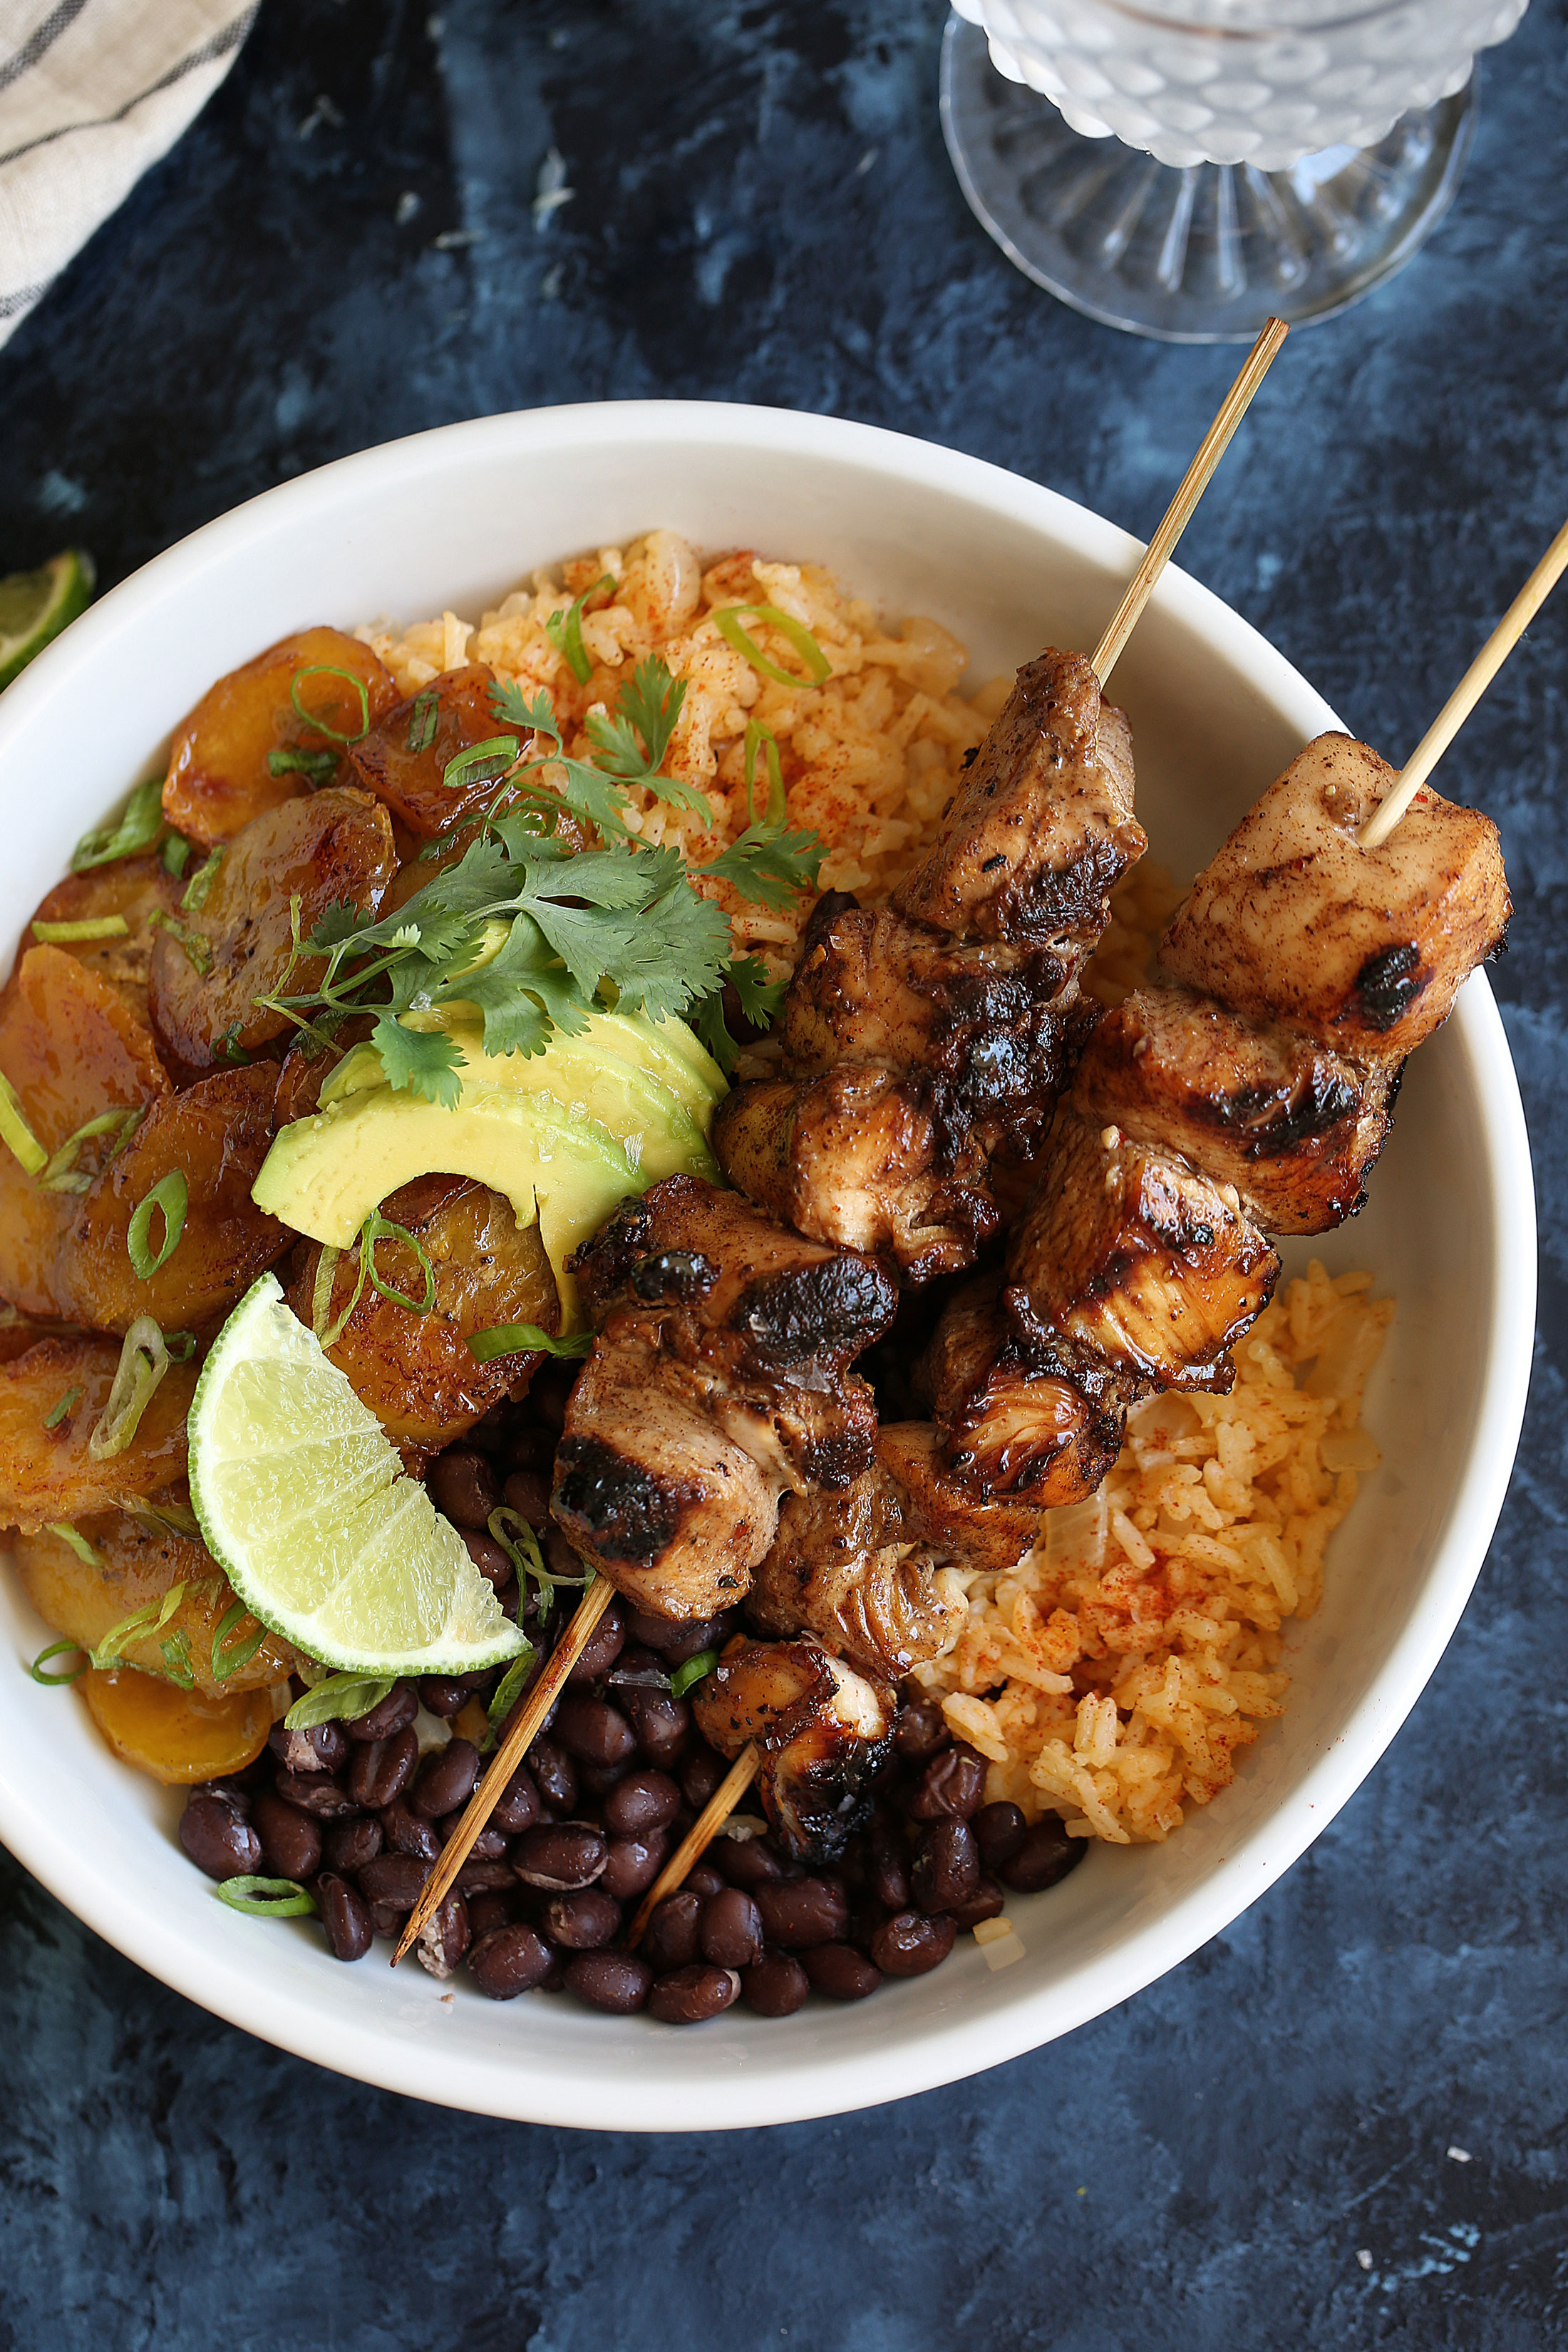 jerk chicken skewers with sweet plantains, yellow rice and black beans